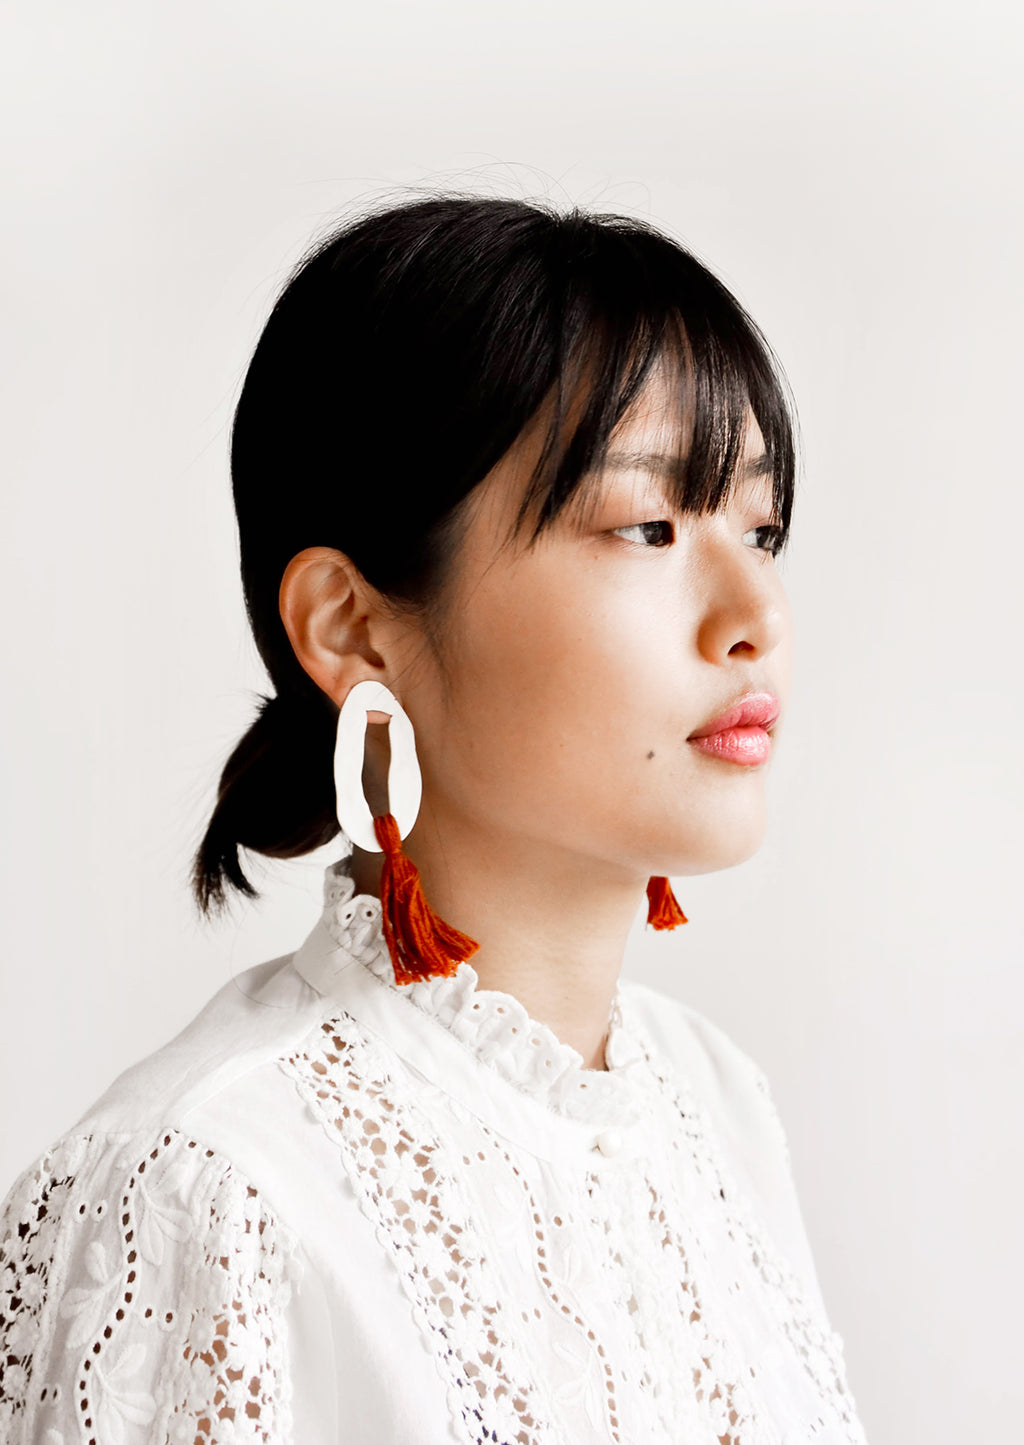 1: Model wears white and red earrings with white blouse.